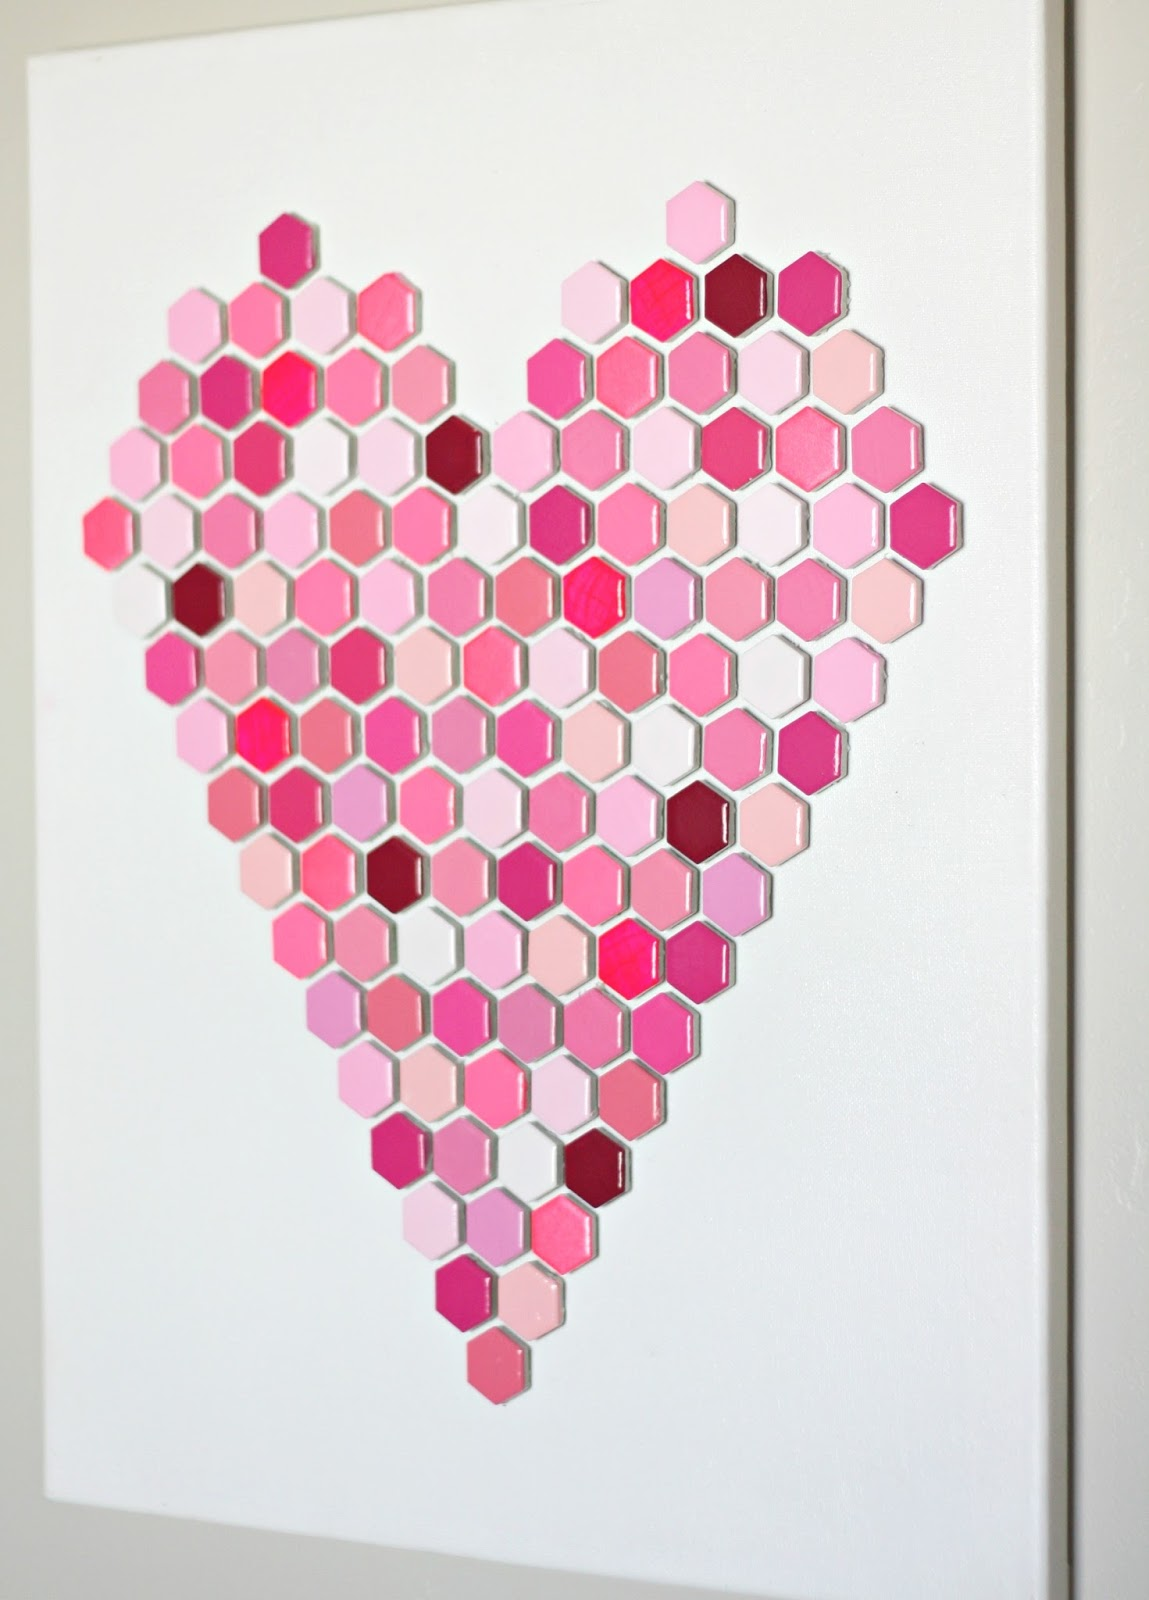 diy hexagon tile heart art 6